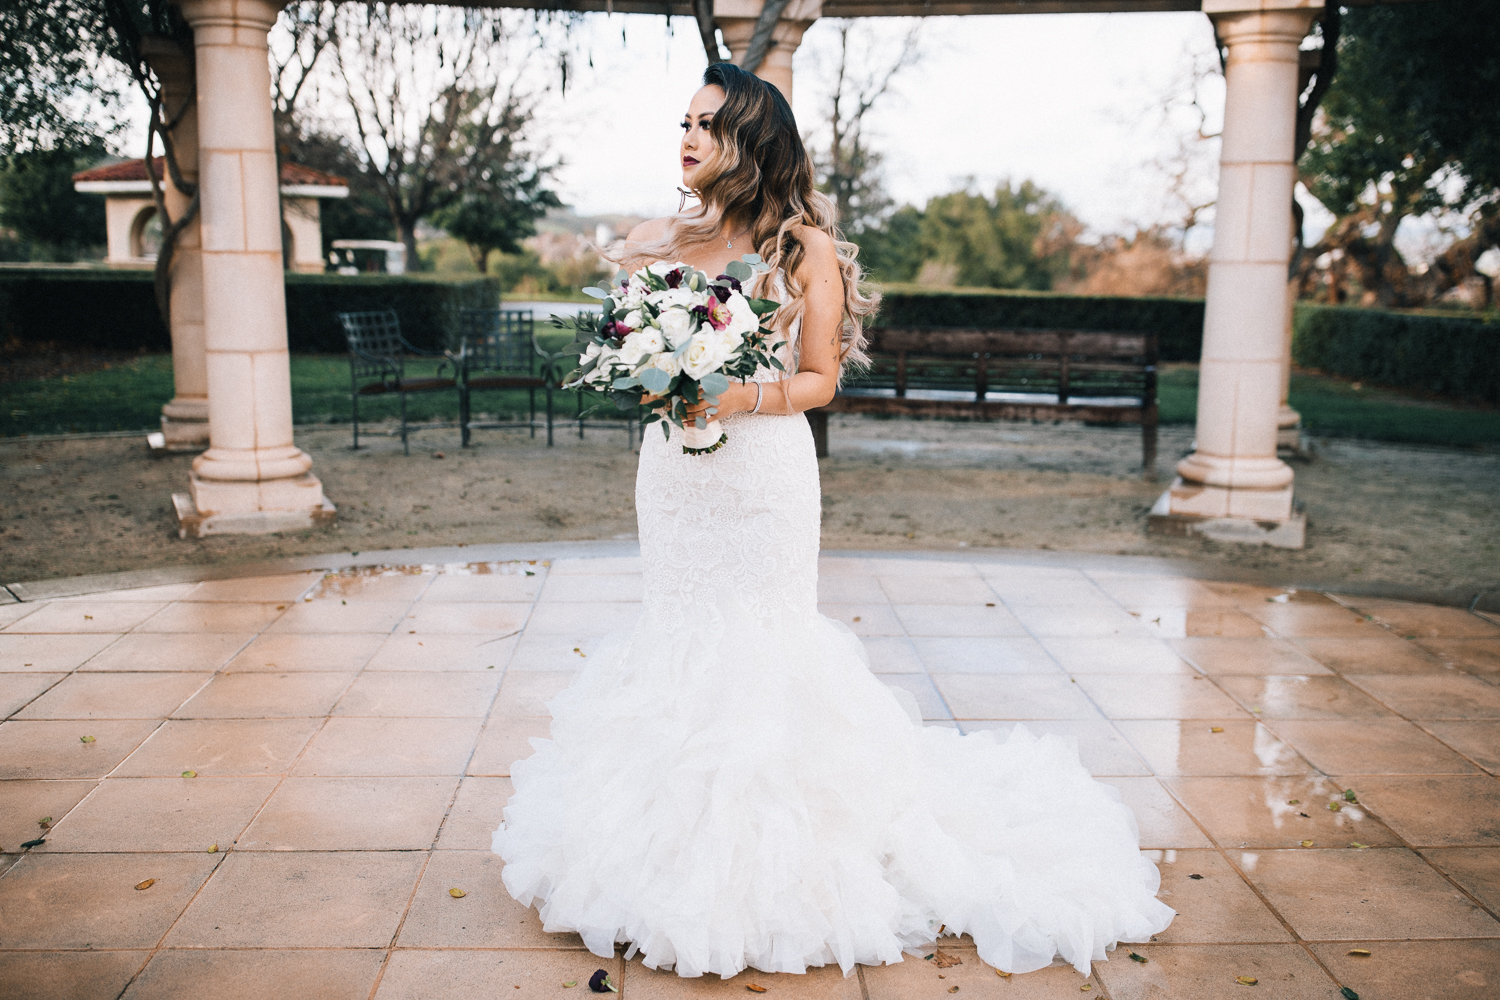 2019_01_ 202019.01.20 Santiago Wedding Blog Photos Edited For Web 0032.jpg